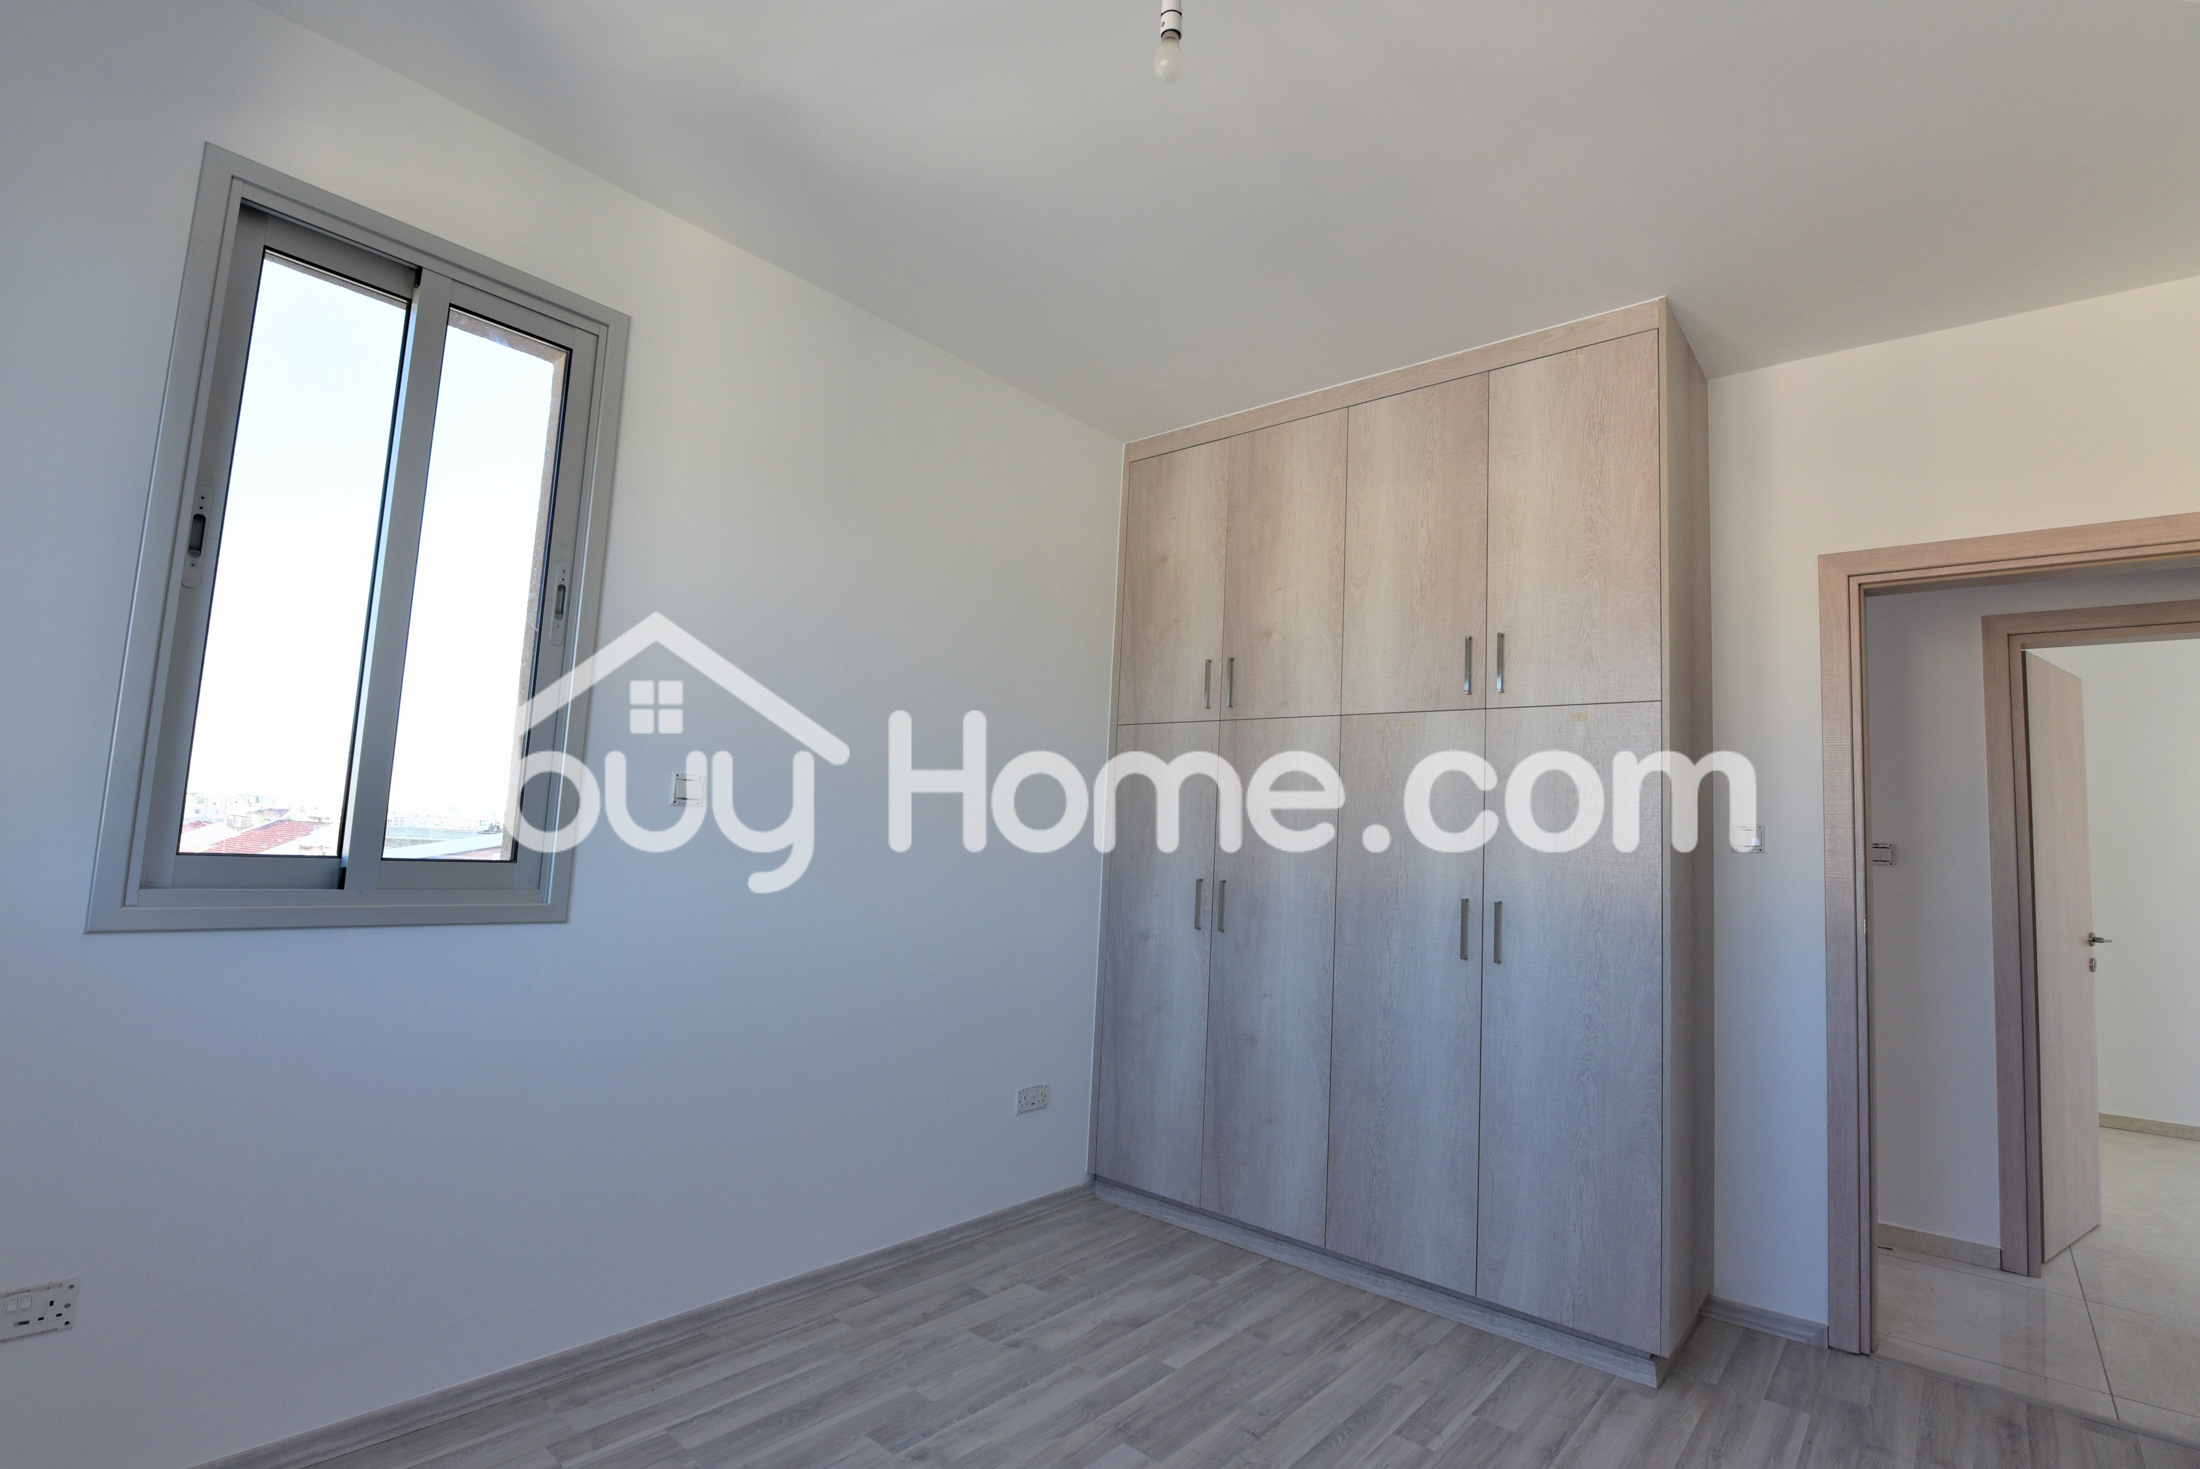 Brand New 3 bedroom Penthouse | BuyHome